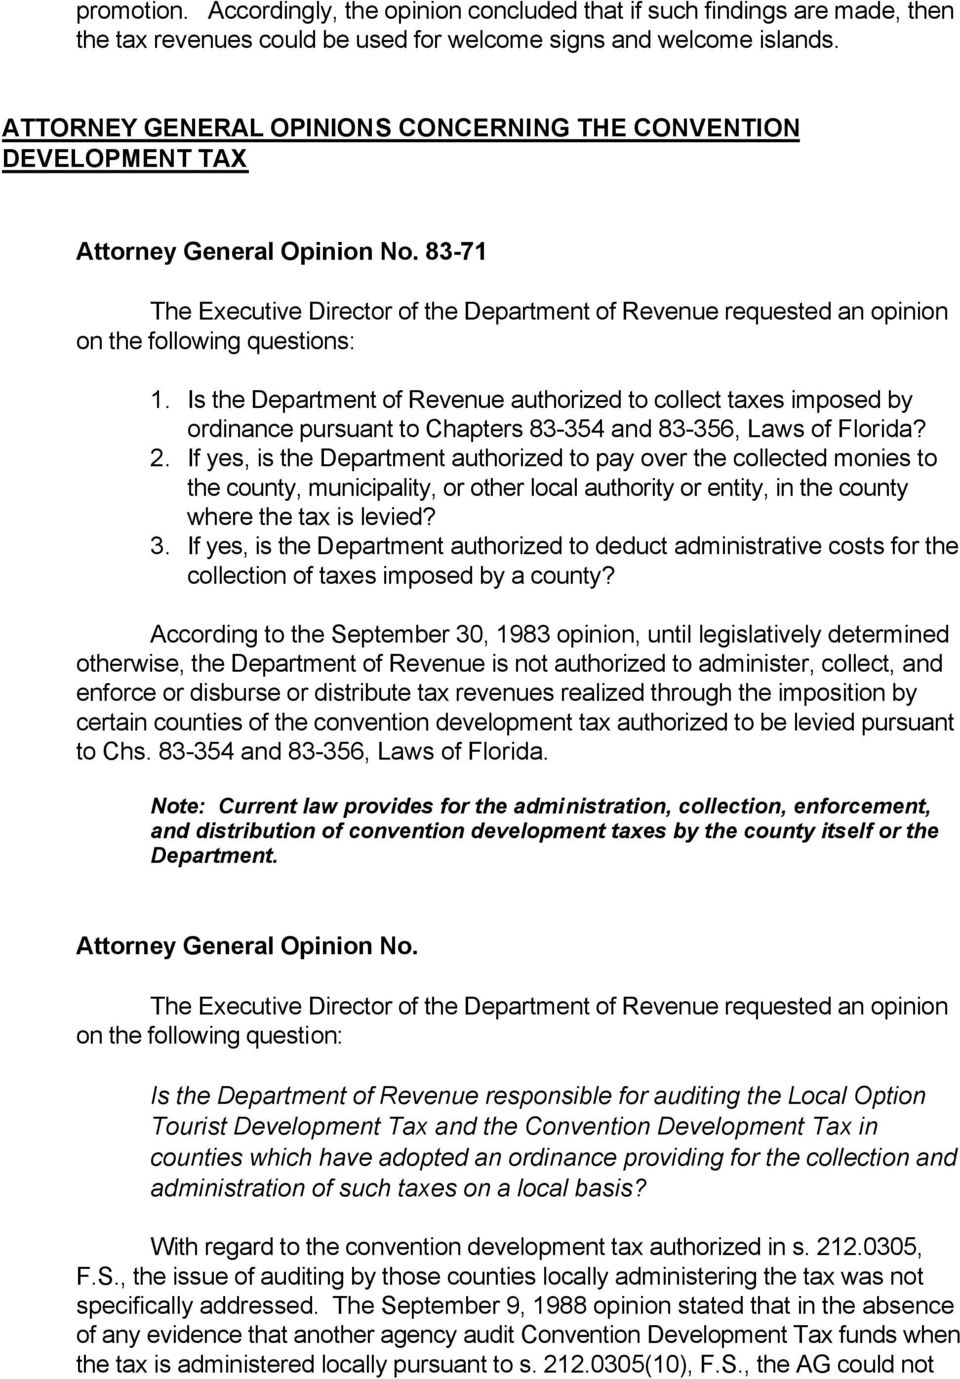 83-71 The Executive Director of the Department of Revenue requested an opinion on the following questions: 1.